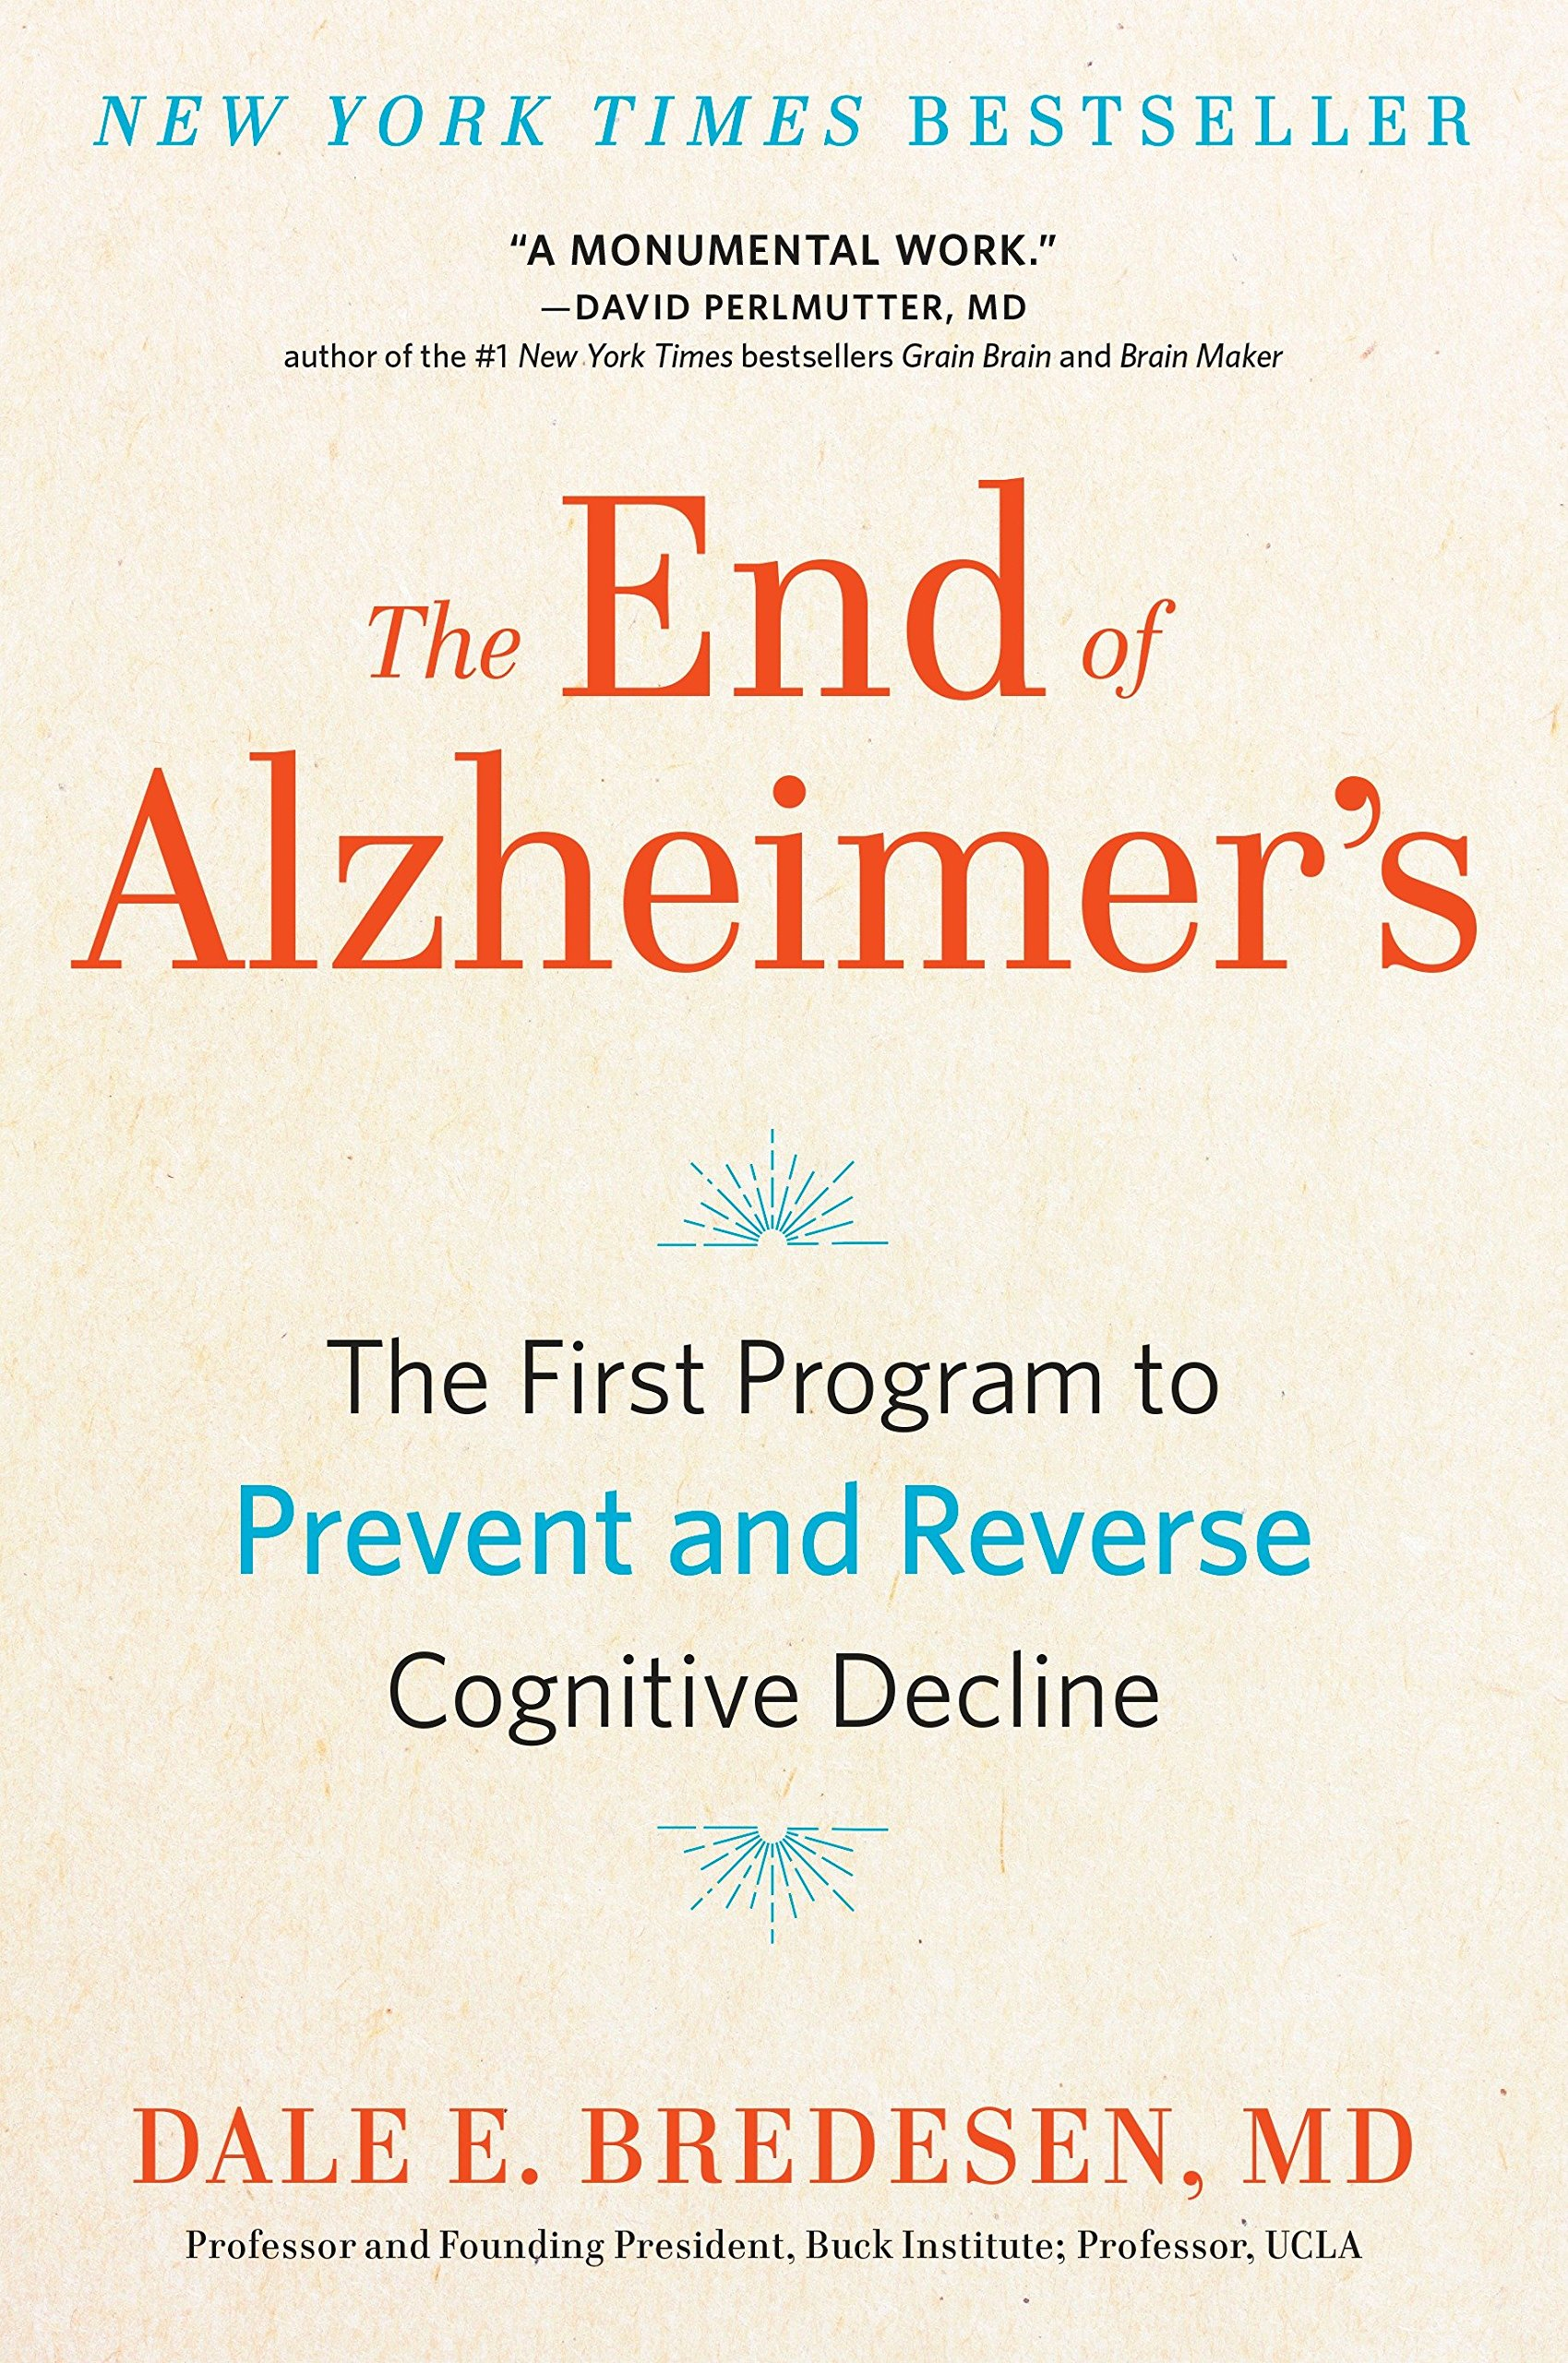 The End of Alzheimer's: The First Program to Prevent and Reverse Cognitive Decline by AVERY